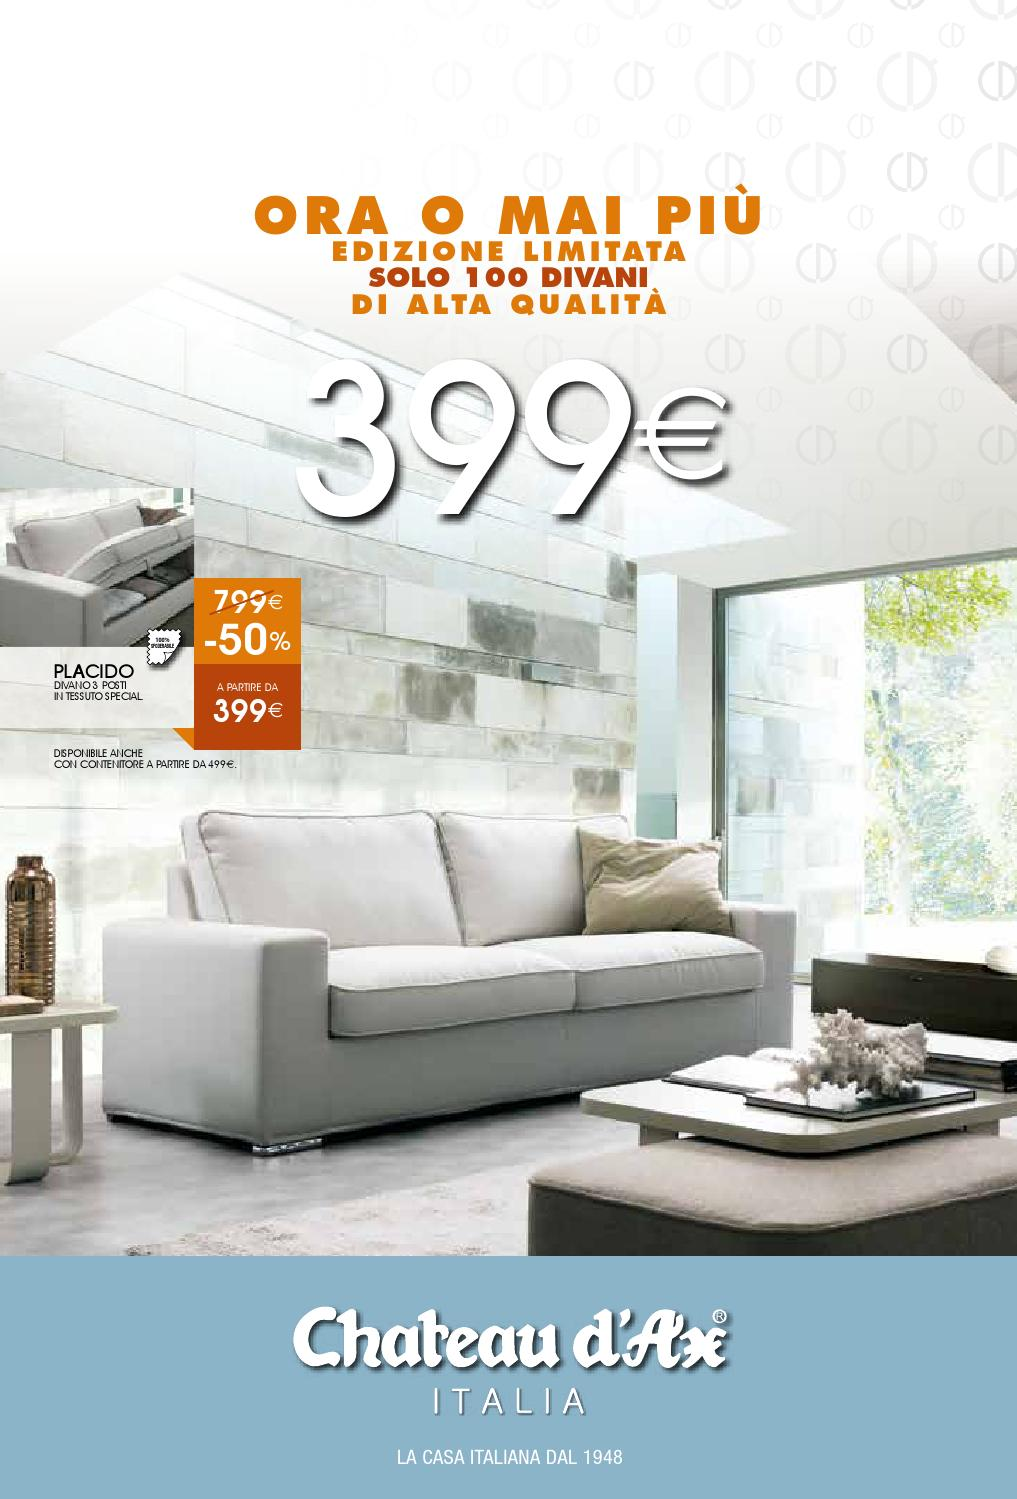 Chateau d 39 ax catalogue malta september 2014 by steffy - Letto fifty chateau d ax ...